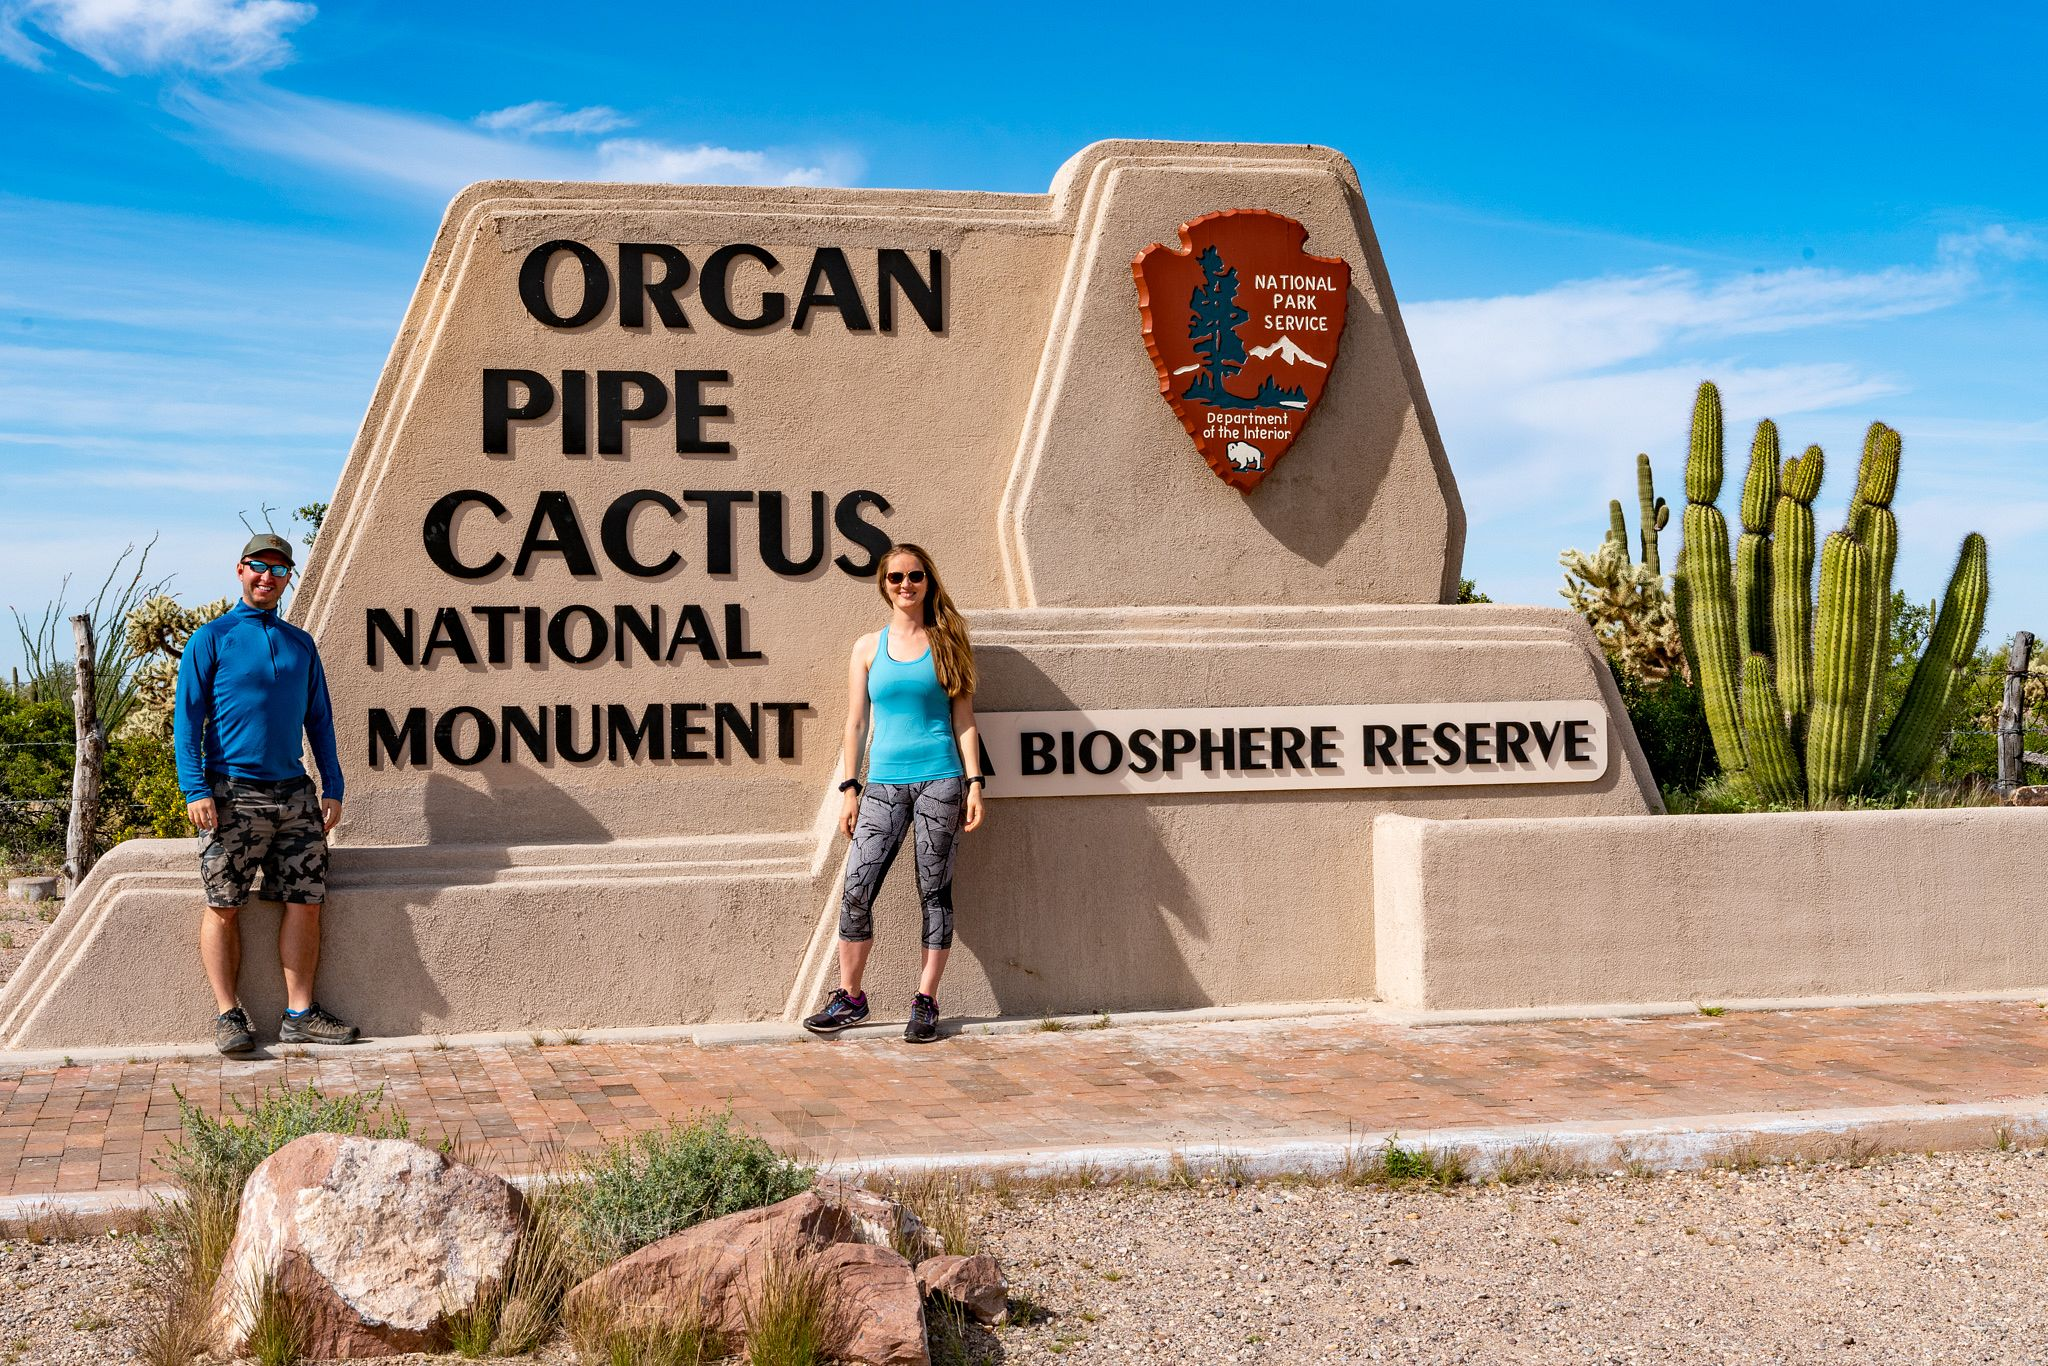 Entrance to Organ Pipe Cactus National Monument